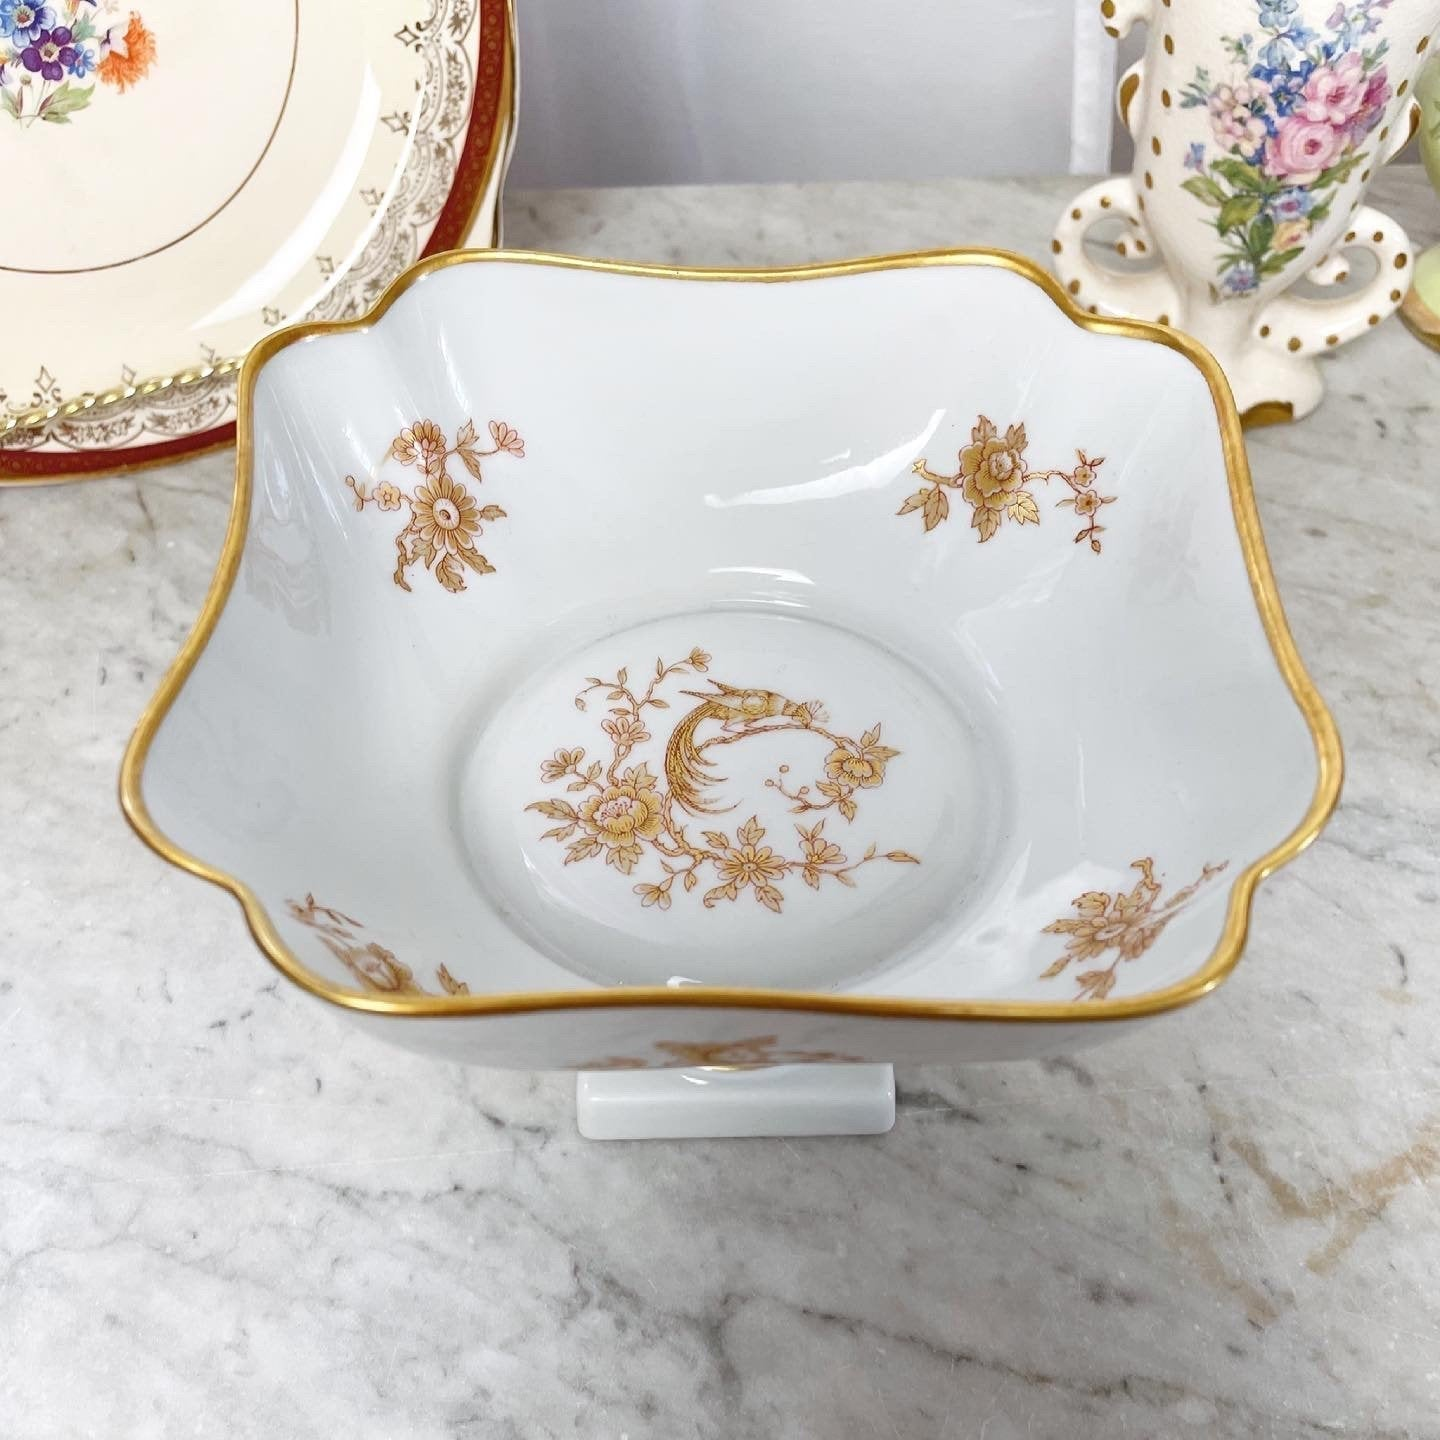 Vintage White and Gold Floral Limoges Compote